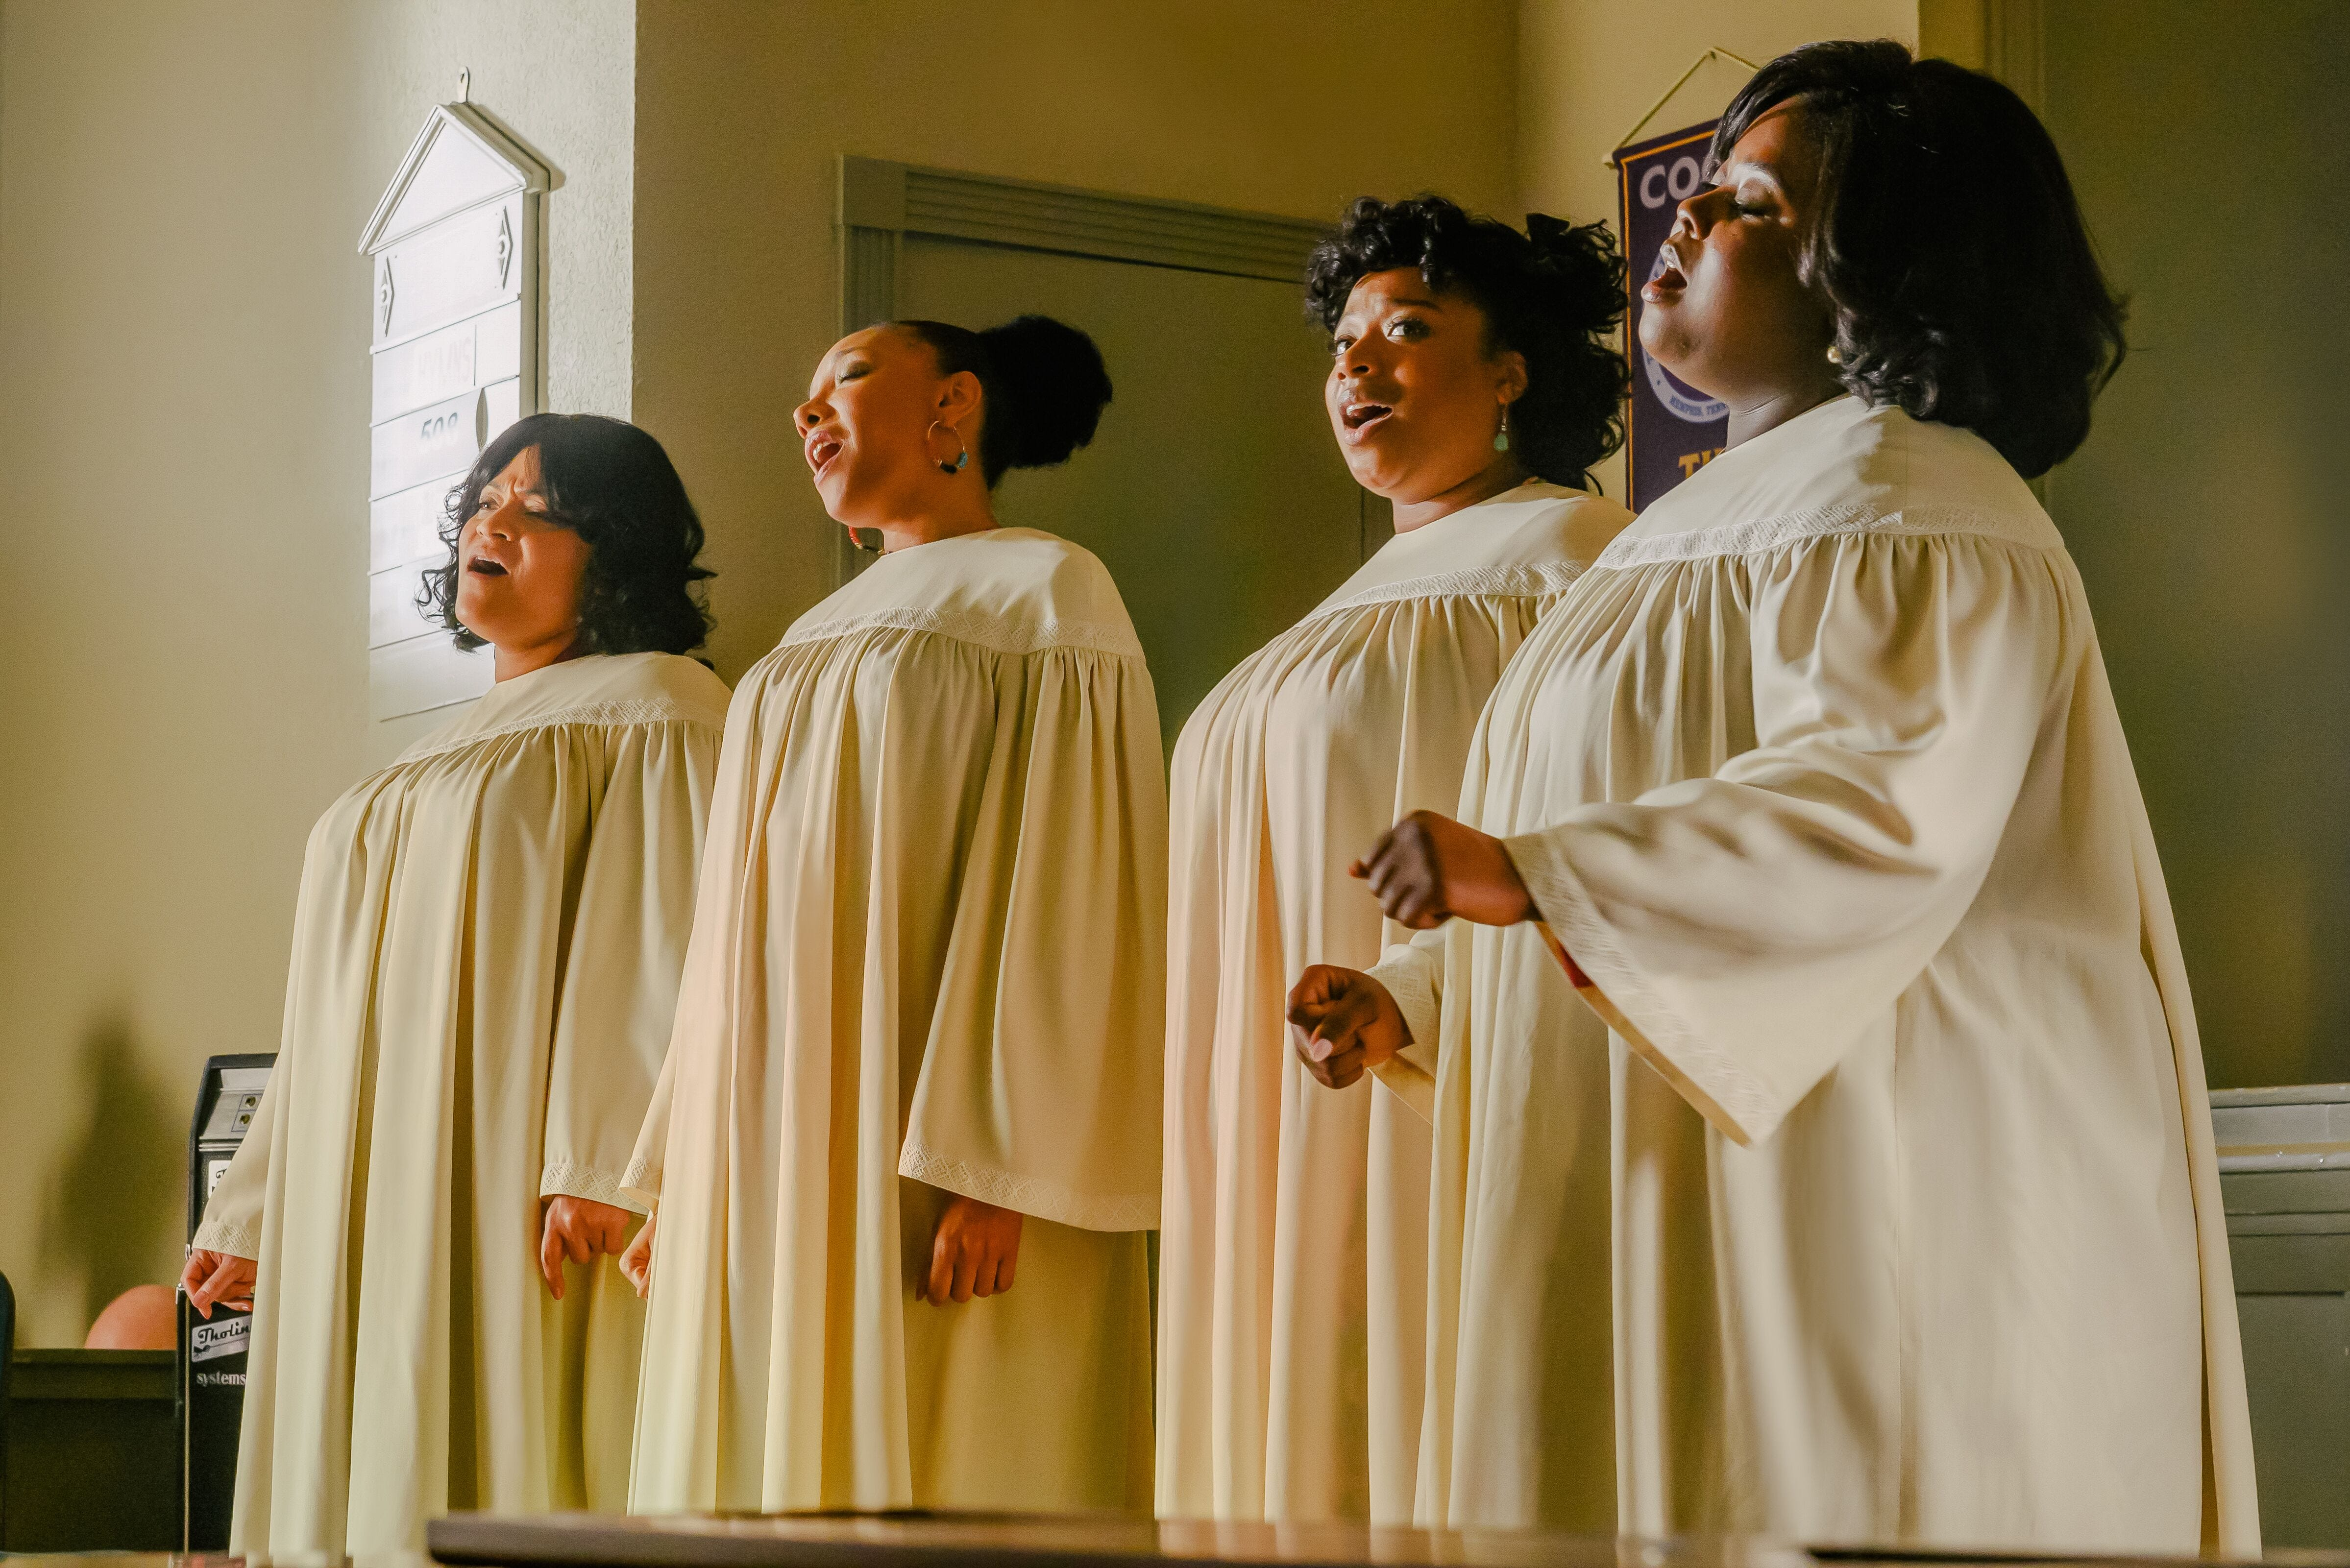 Spirit of Detroit shines through in Lifetime movie about gospel group the Clark Sisters